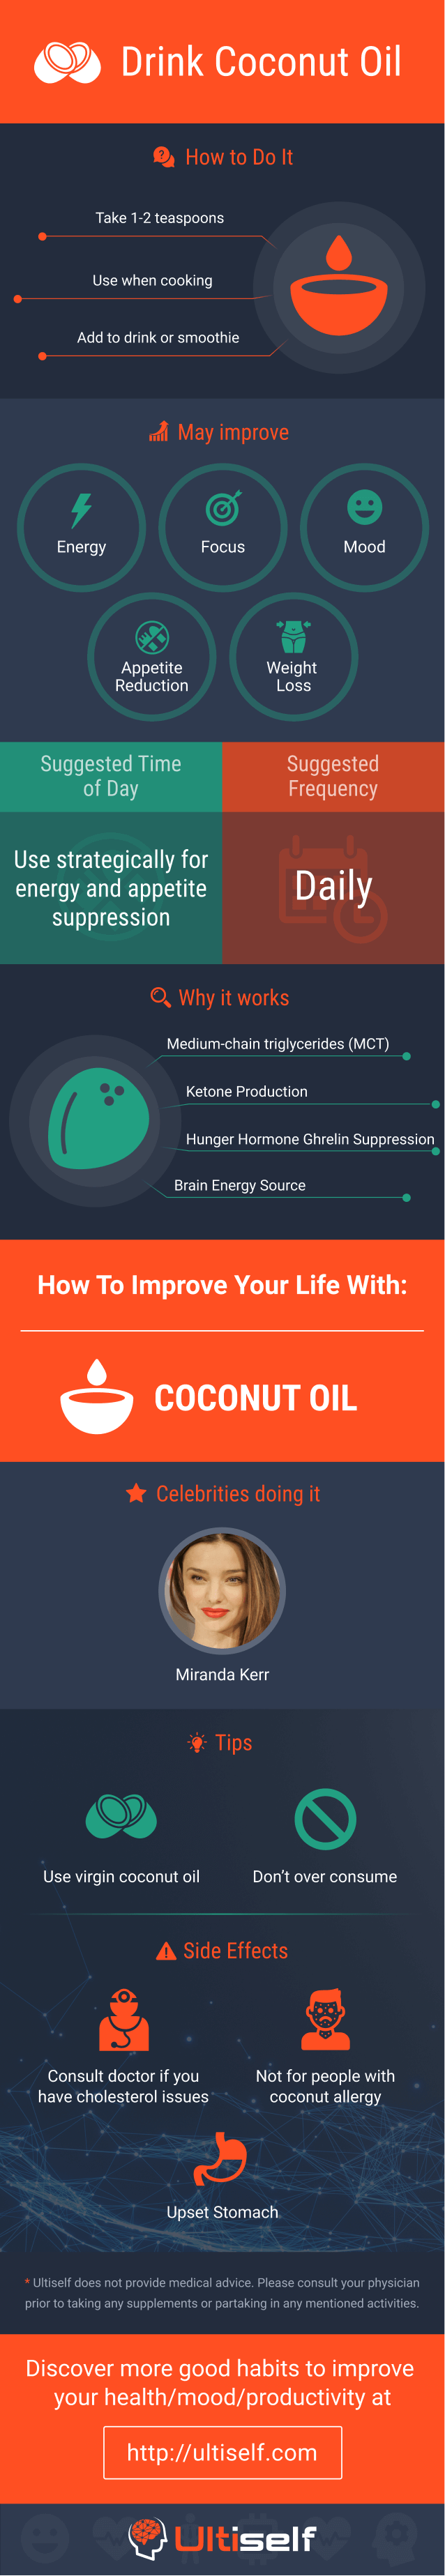 Drink Coconut Oil infographic